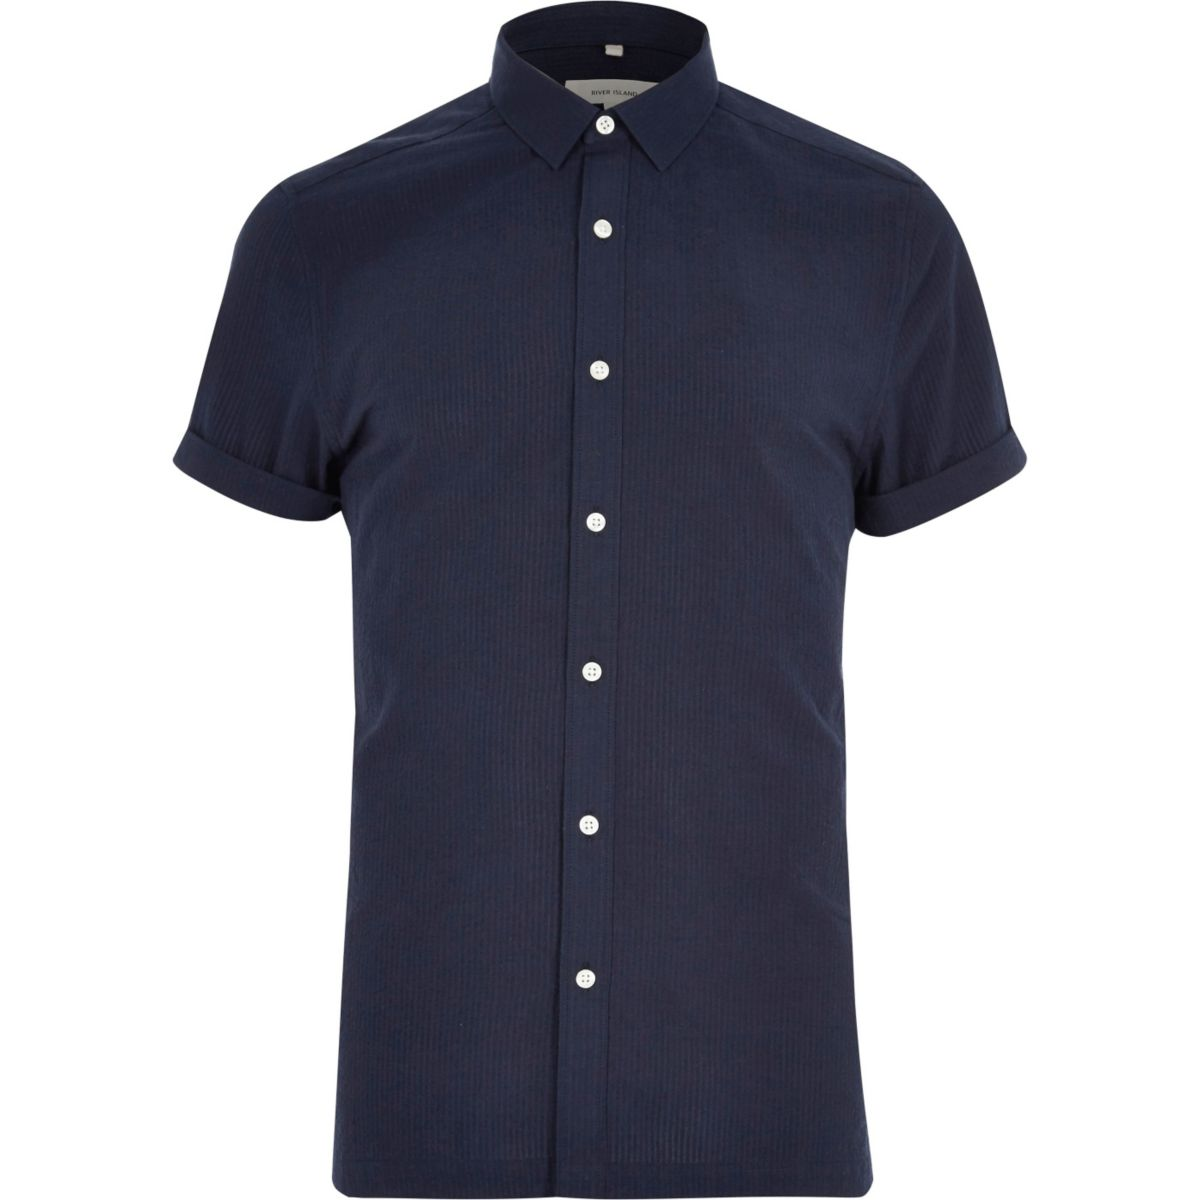 Navy seersucker short sleeve shirt shirts sale men for Mens seersucker shirts on sale